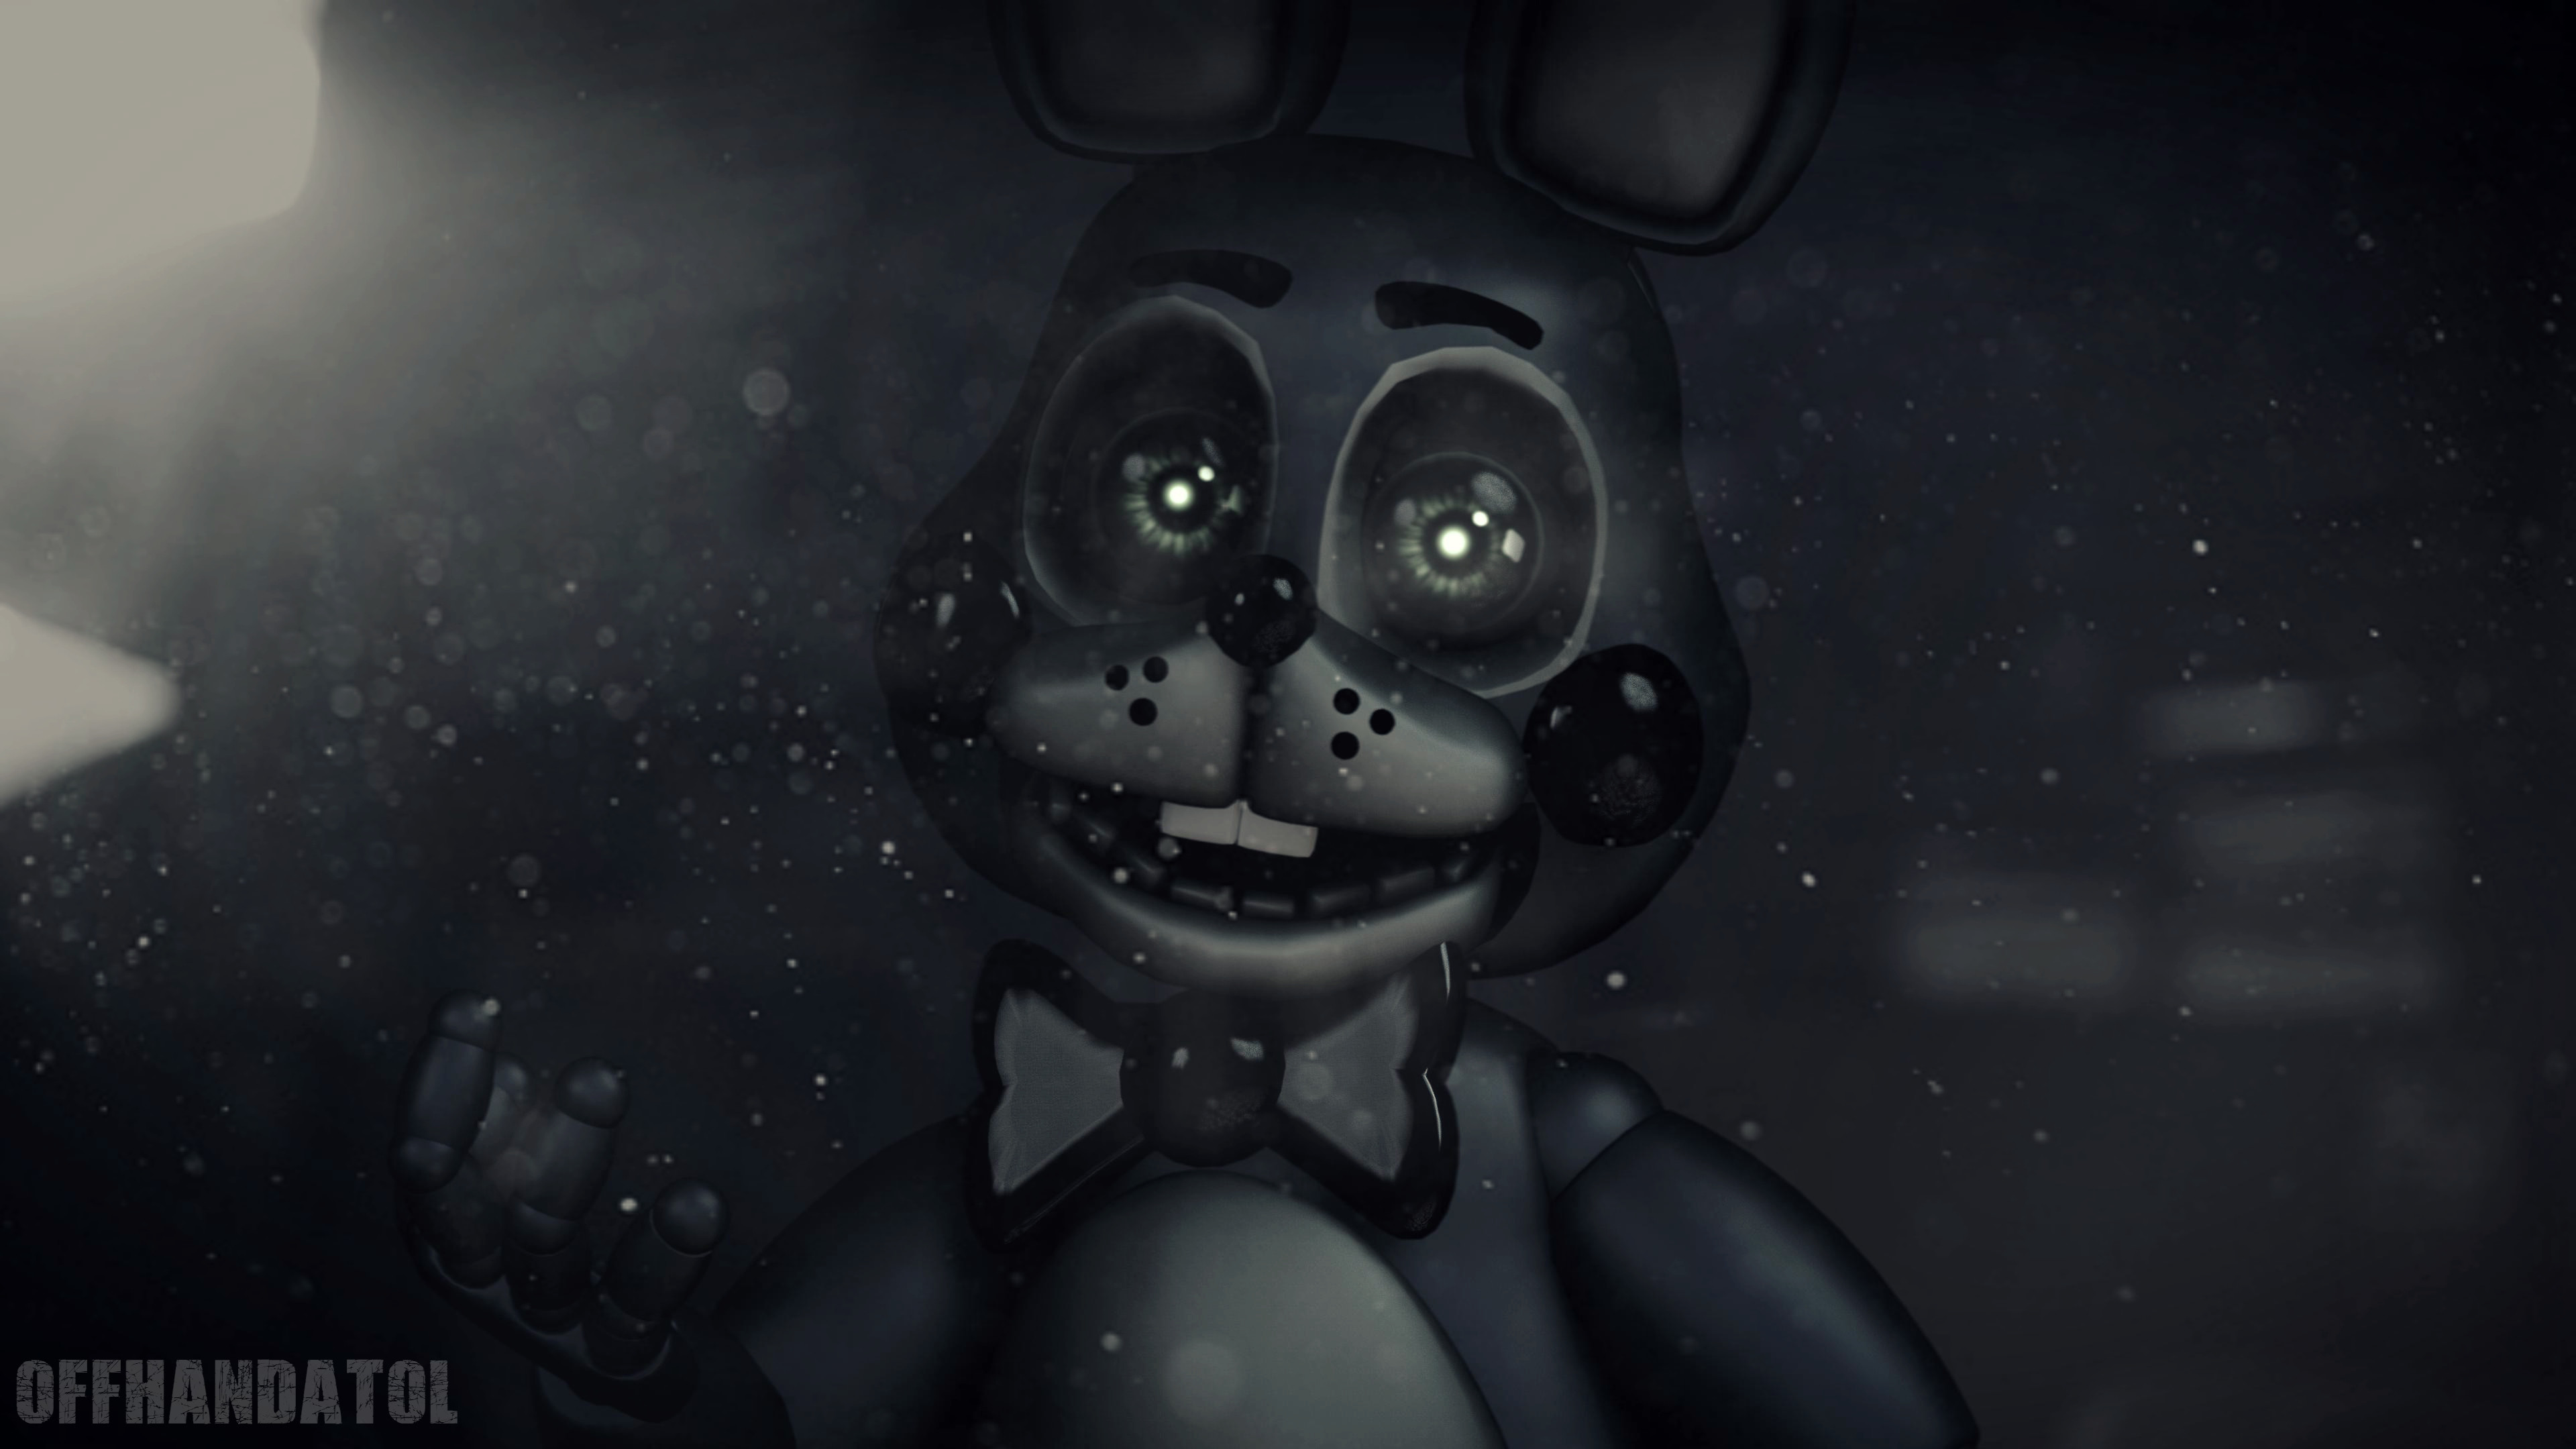 3840x2160 Toy Bonnie Wallpaper by offhandatol Toy Bonnie Wallpaper by offhandatol